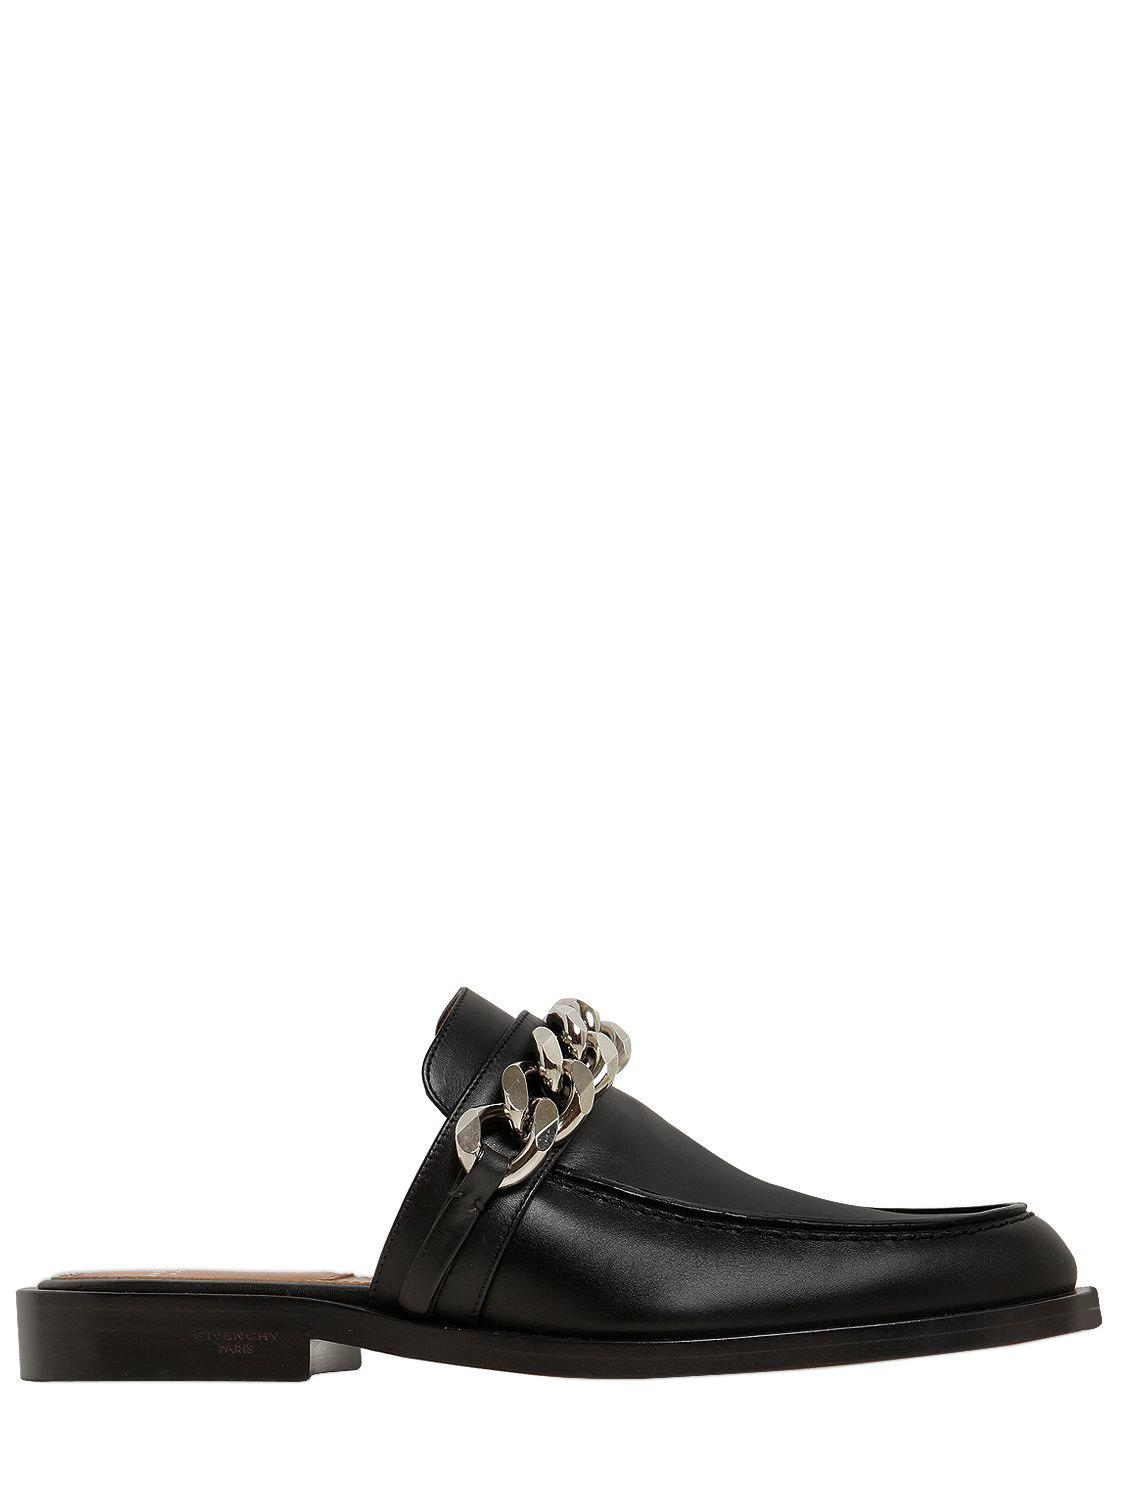 Givenchy. Women's Black 20mm Chained Leather Mules